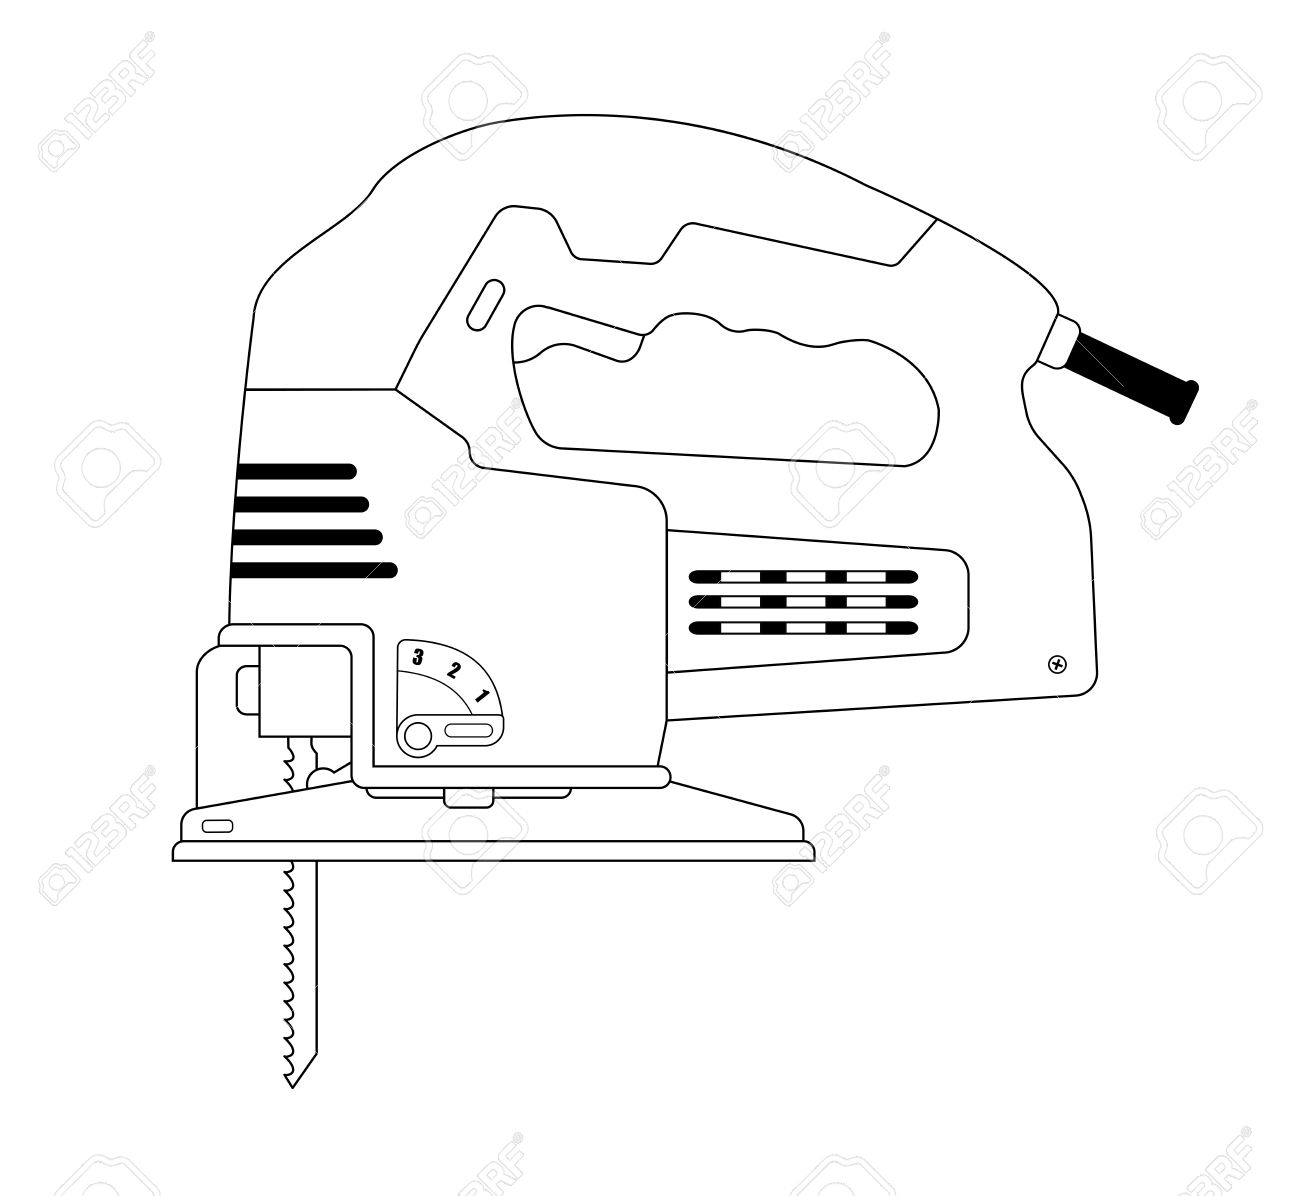 Electric Carpentry Jig Saw Tool. Vector Clip Art Contour Lines ...